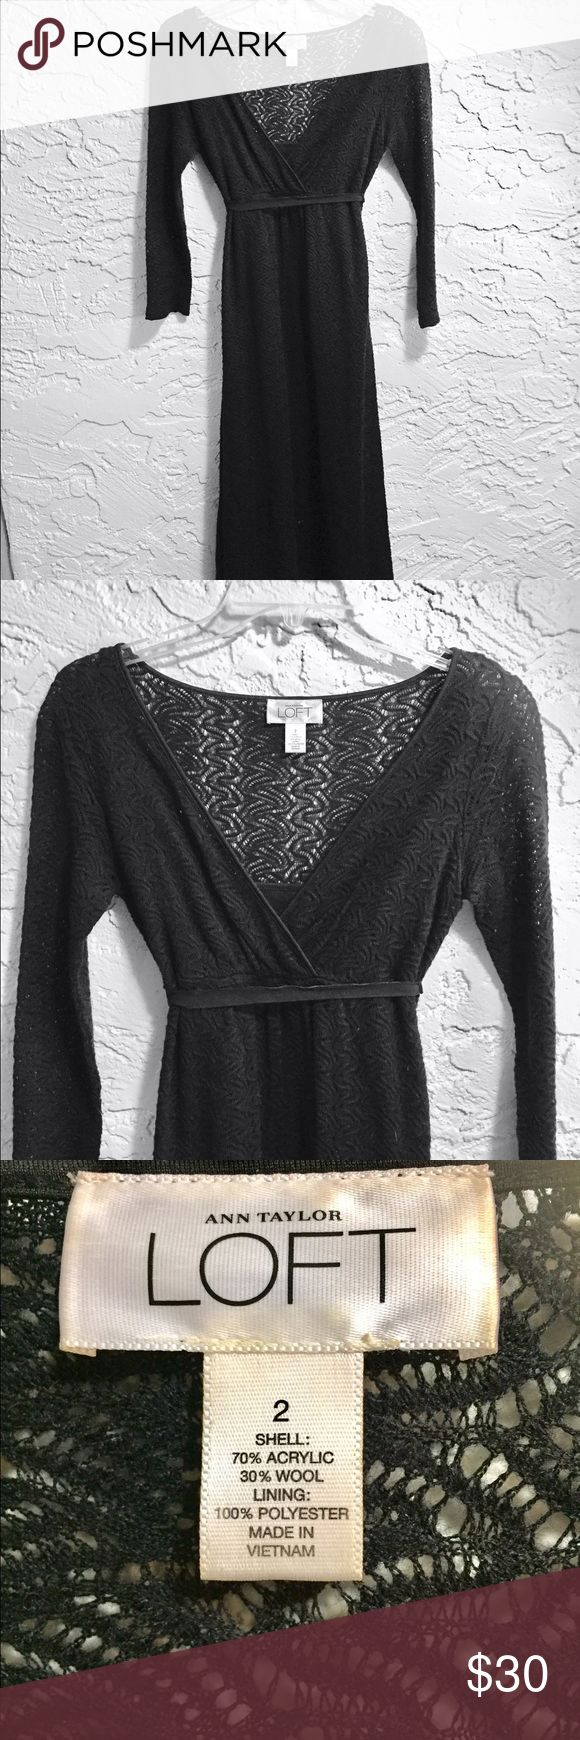 Anne Taylor Loft Crochet Dress with 3/4 Sleeves V-necked Crochet dress with 3/4 length sleeves. Looks amazing with a pair of pumps and a push-up bra or a pair of ballet slippers. Comes with a velvet ribbon belt. Banana Republic Dresses Midi